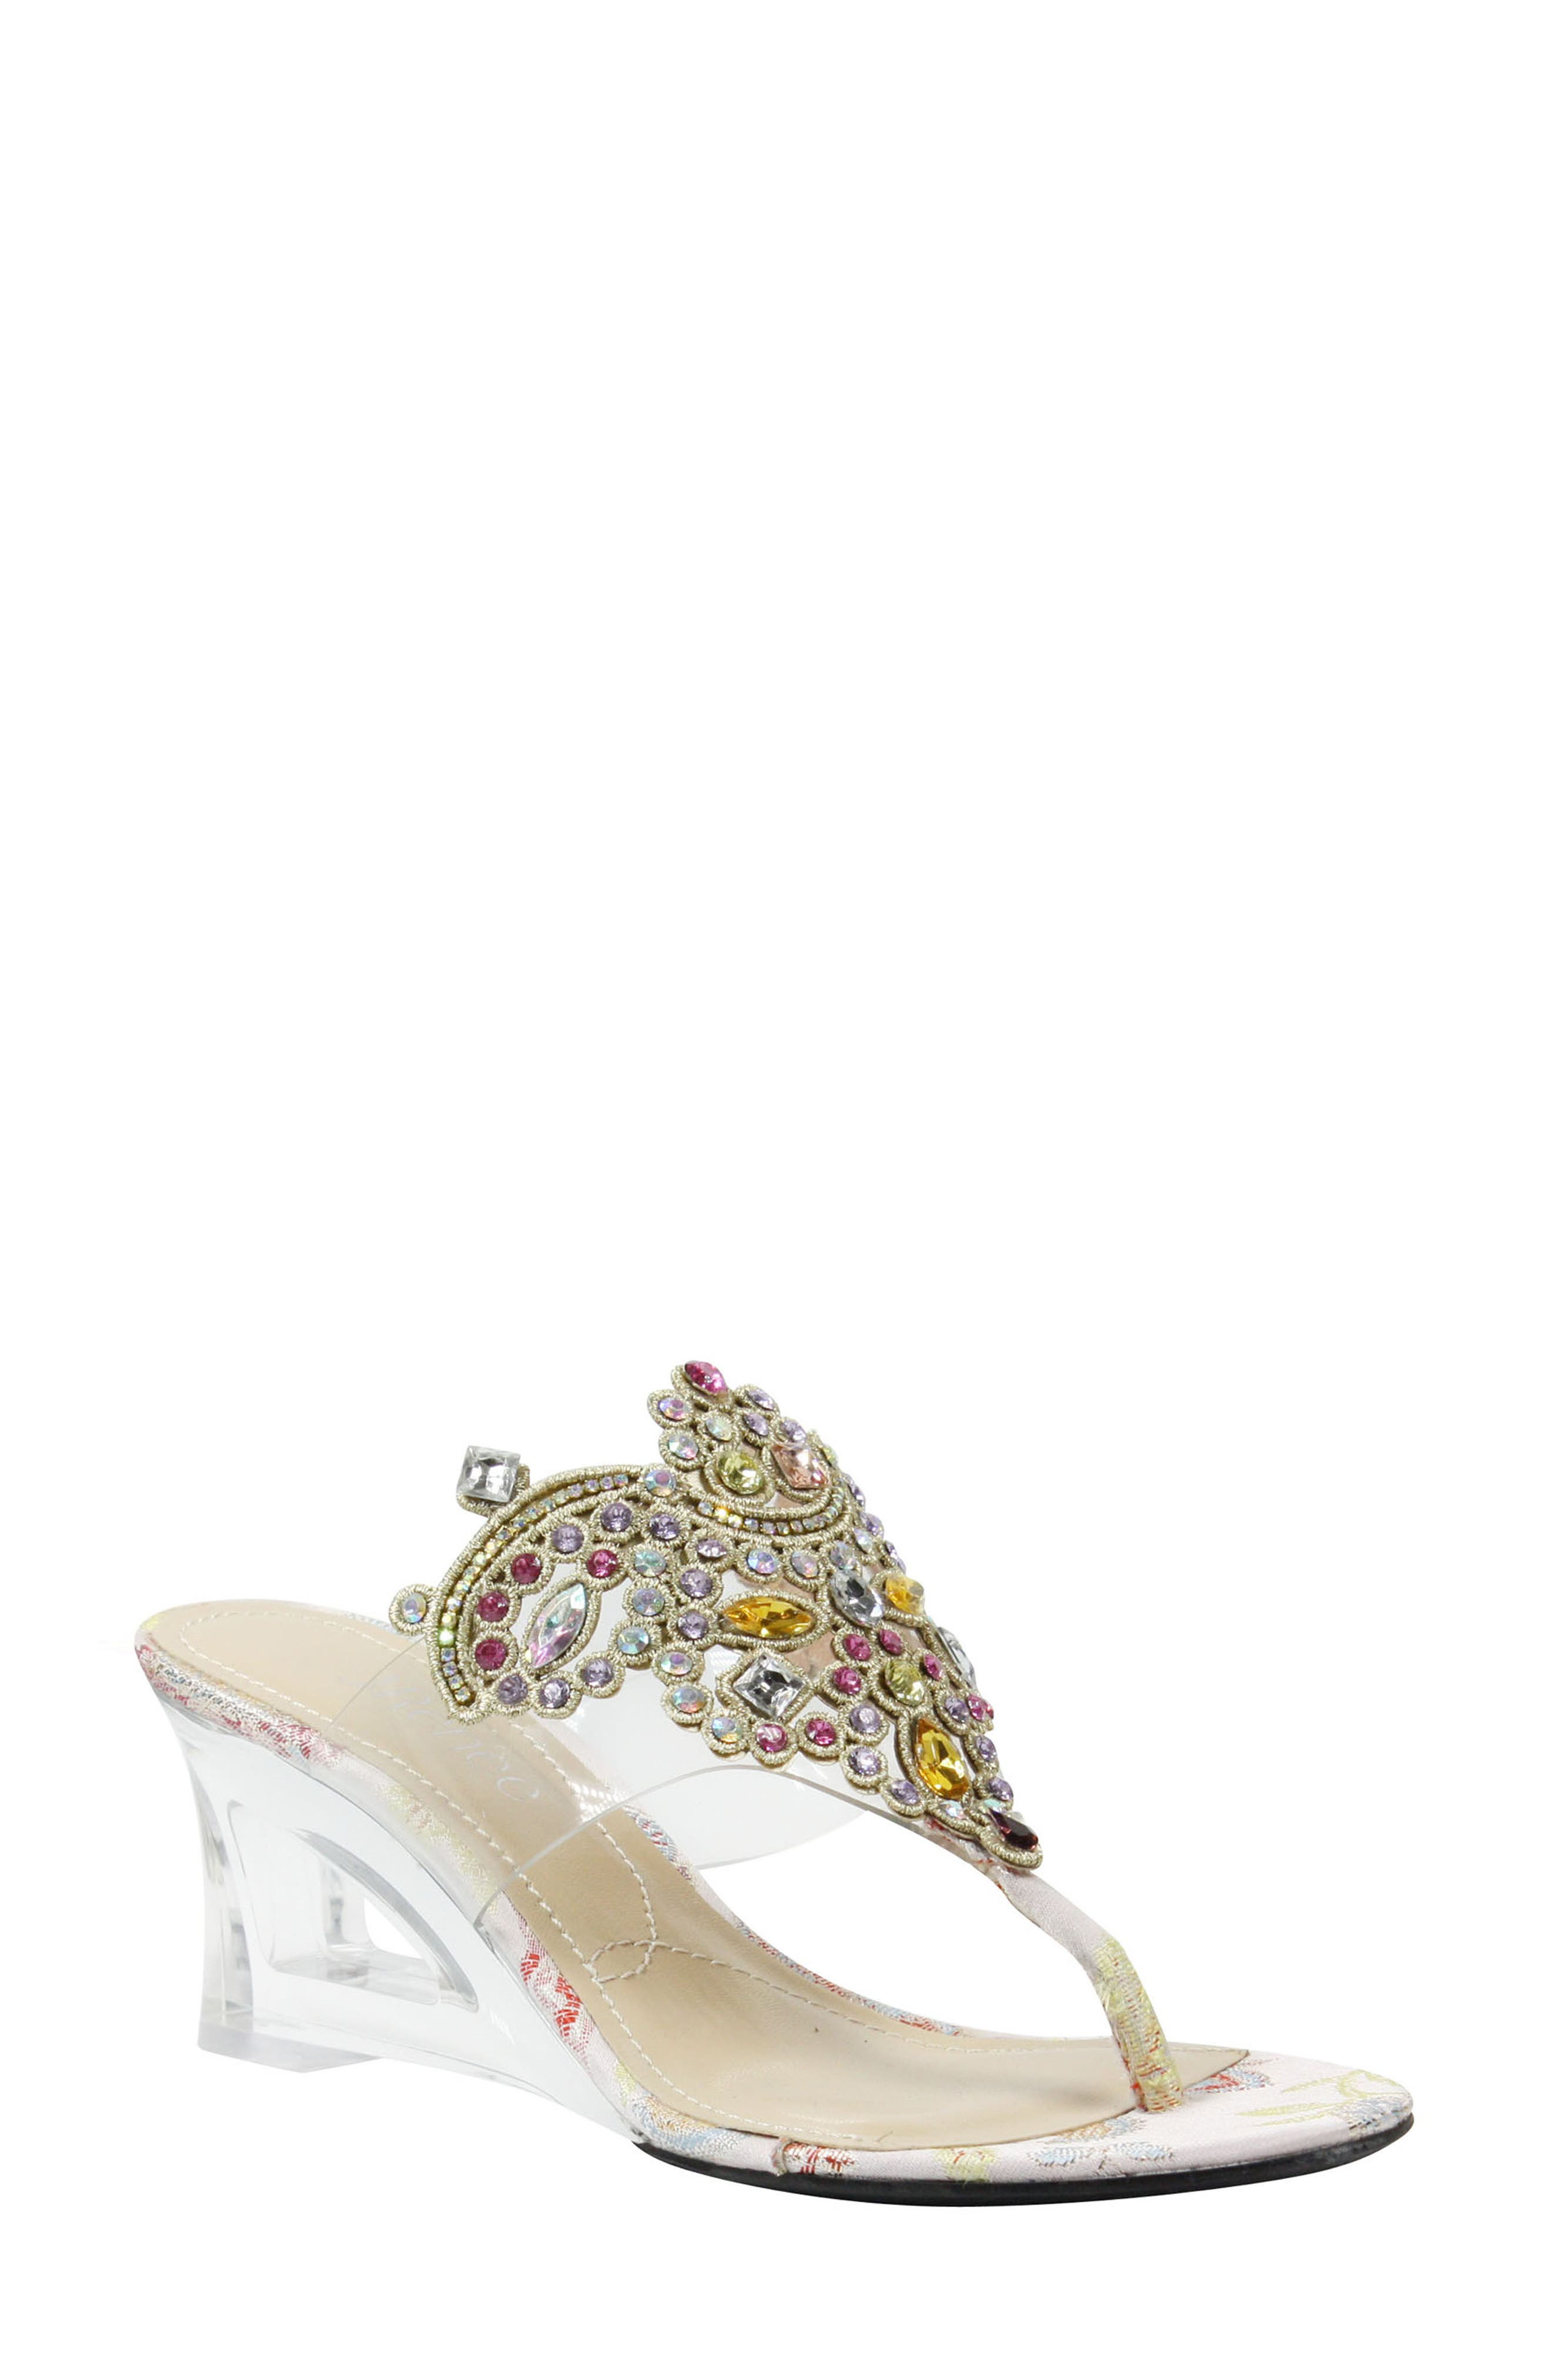 Victorina Embellished Wedge Mule,                         Main,                         color, CLEAR/ PASTEL FABRIC